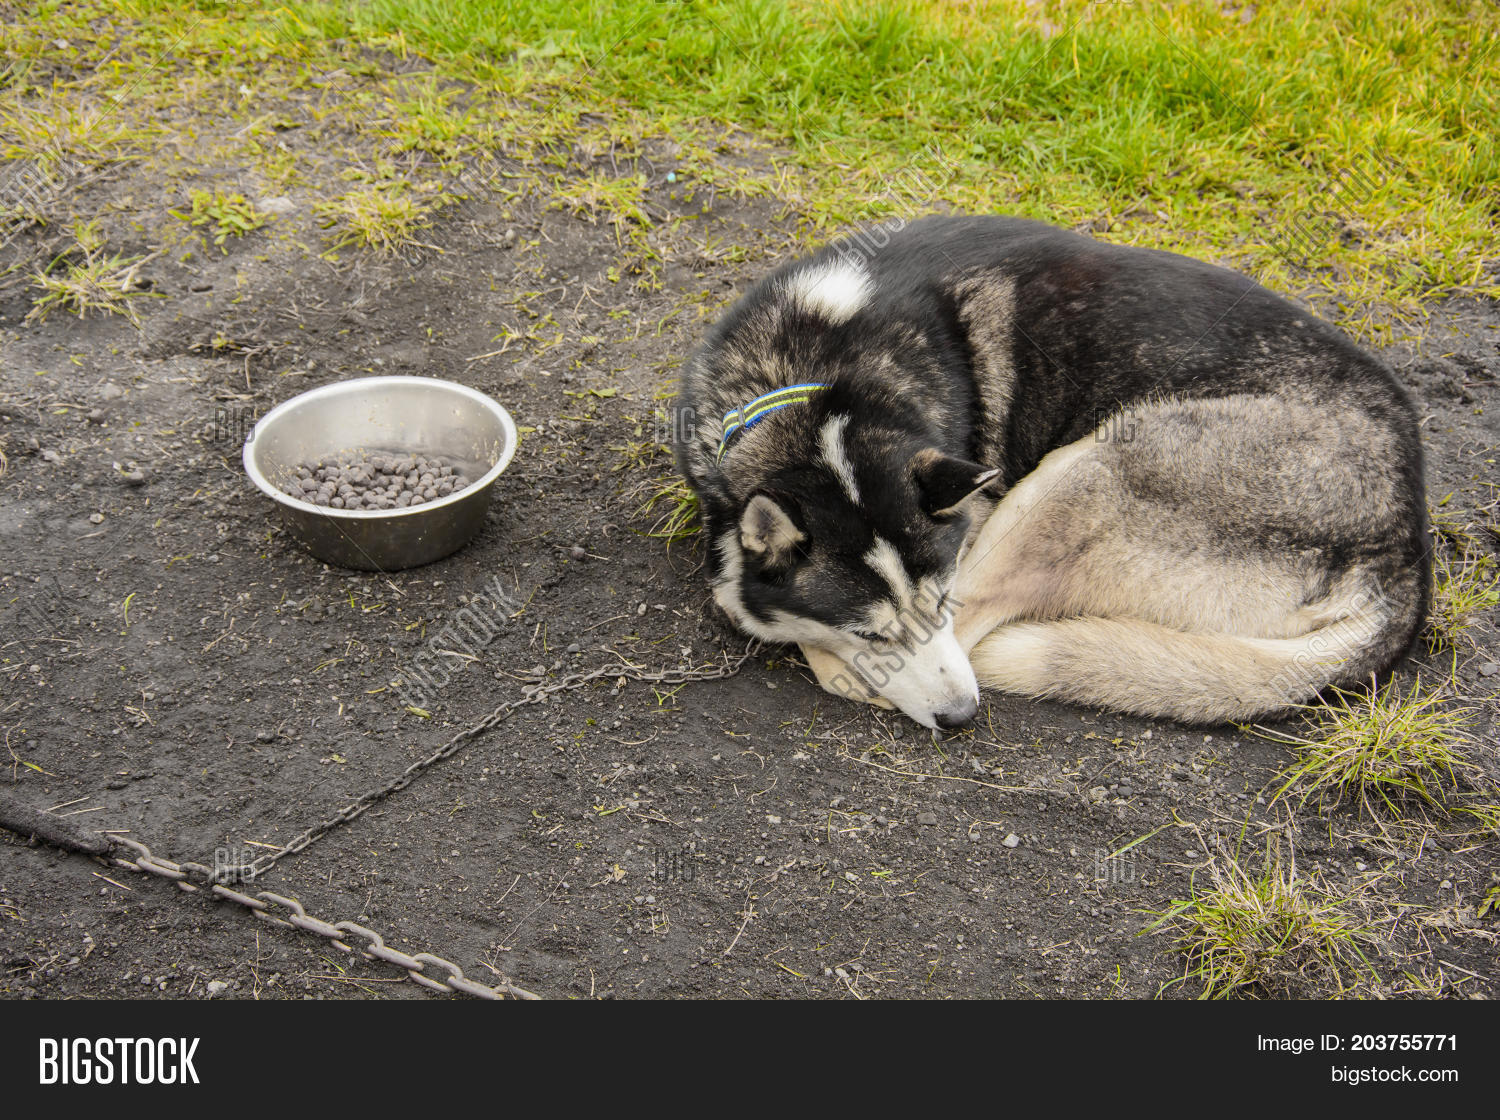 Husky Dogs Food Chain Www Topsimages Com